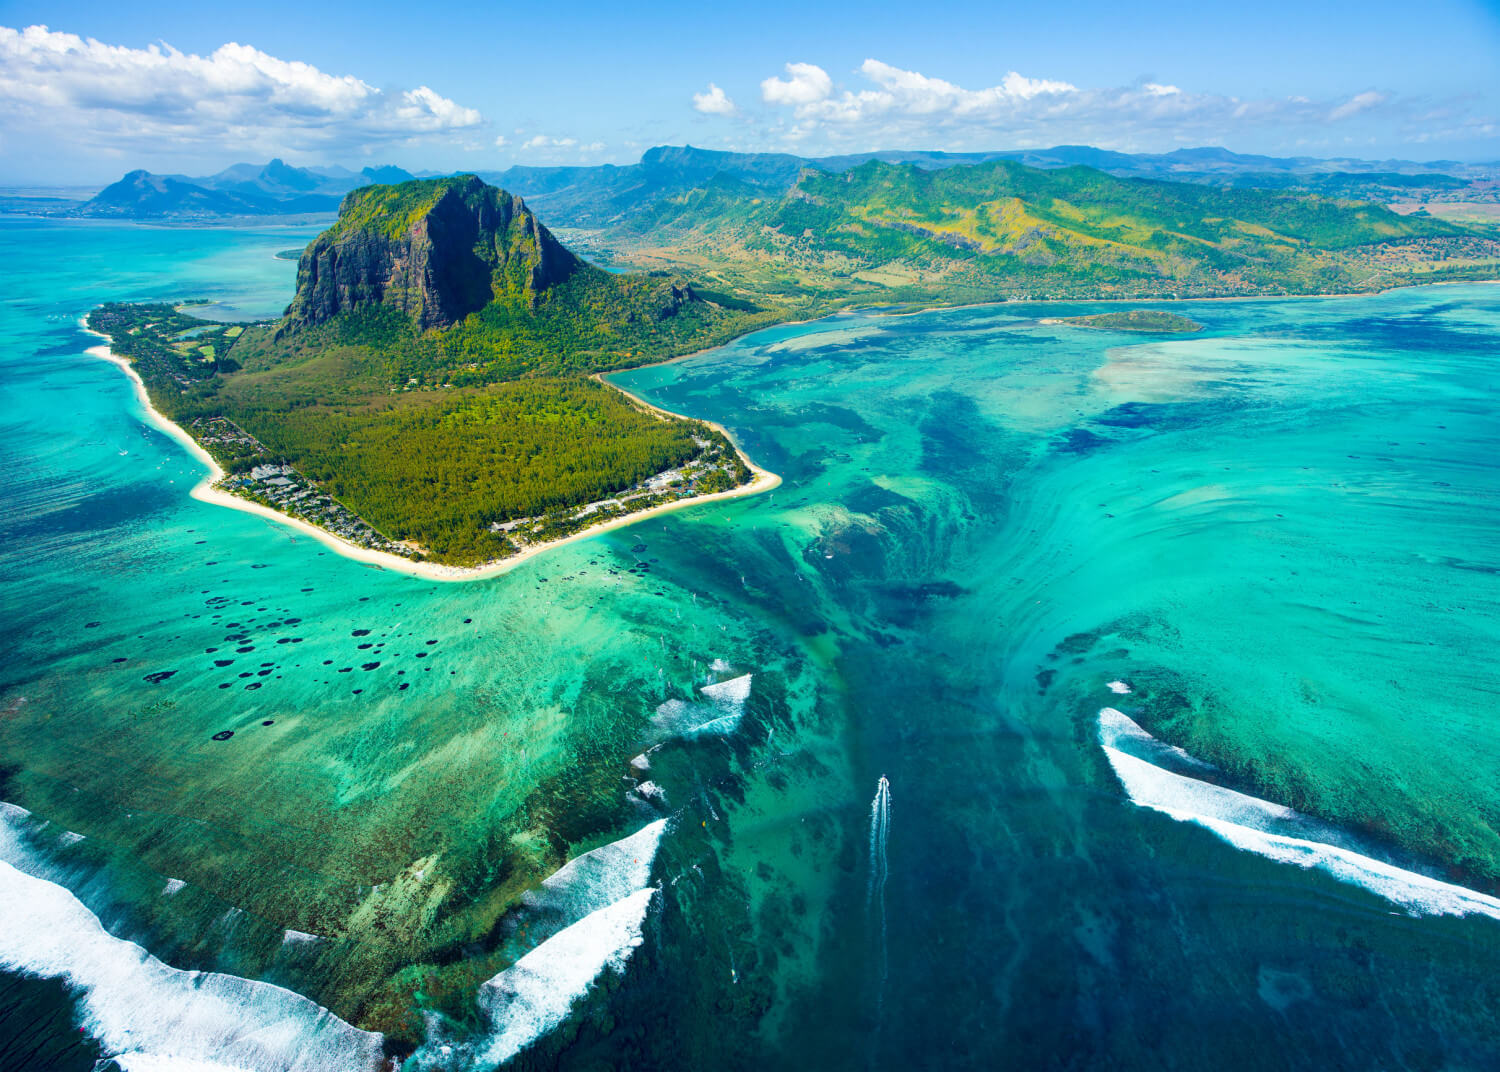 Aerial view of the island of Mauritius, South Indian Ocean, with the underground waterfall